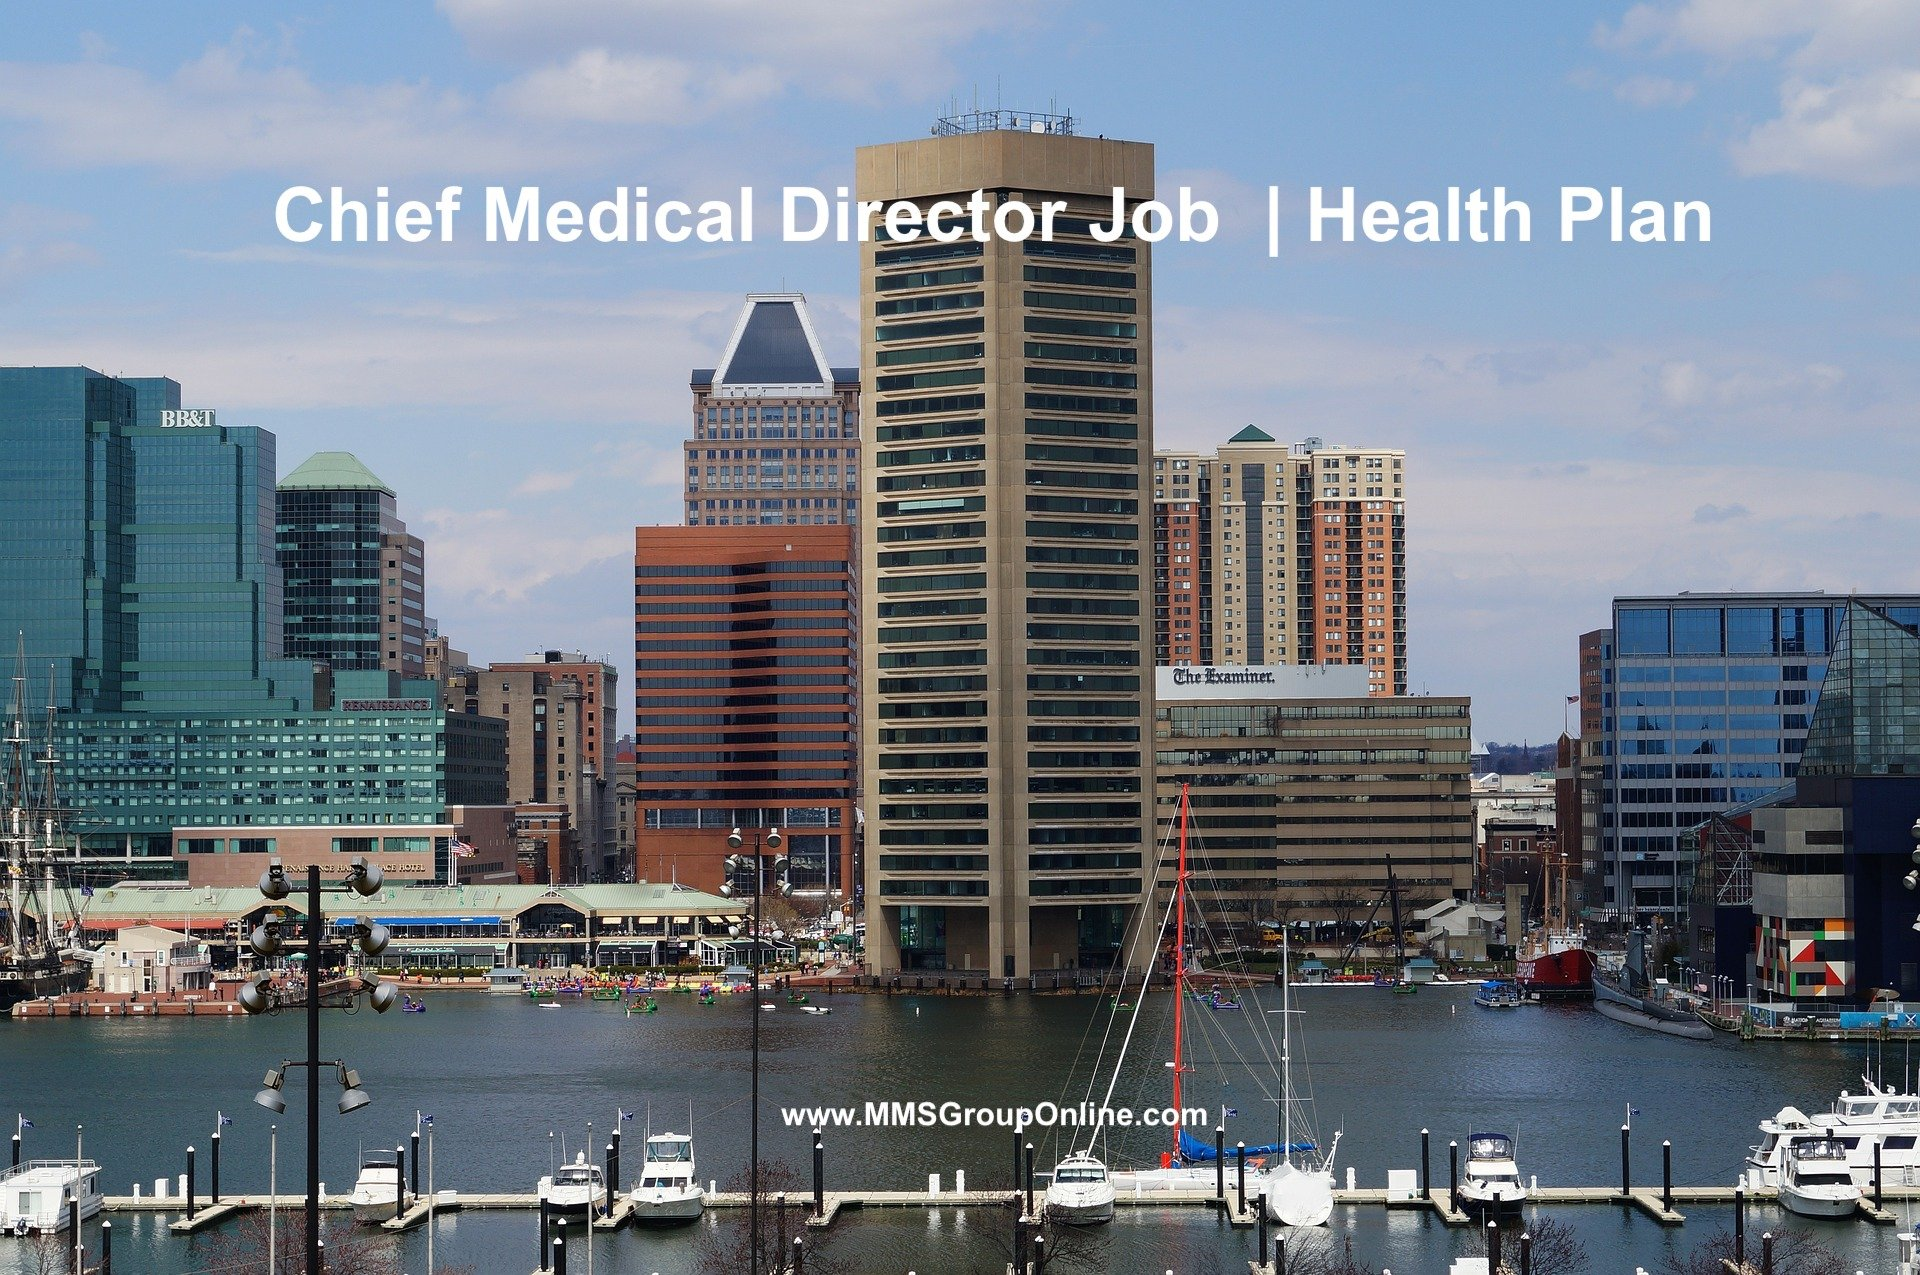 Chief Medical Officer Job In Baltimore MD